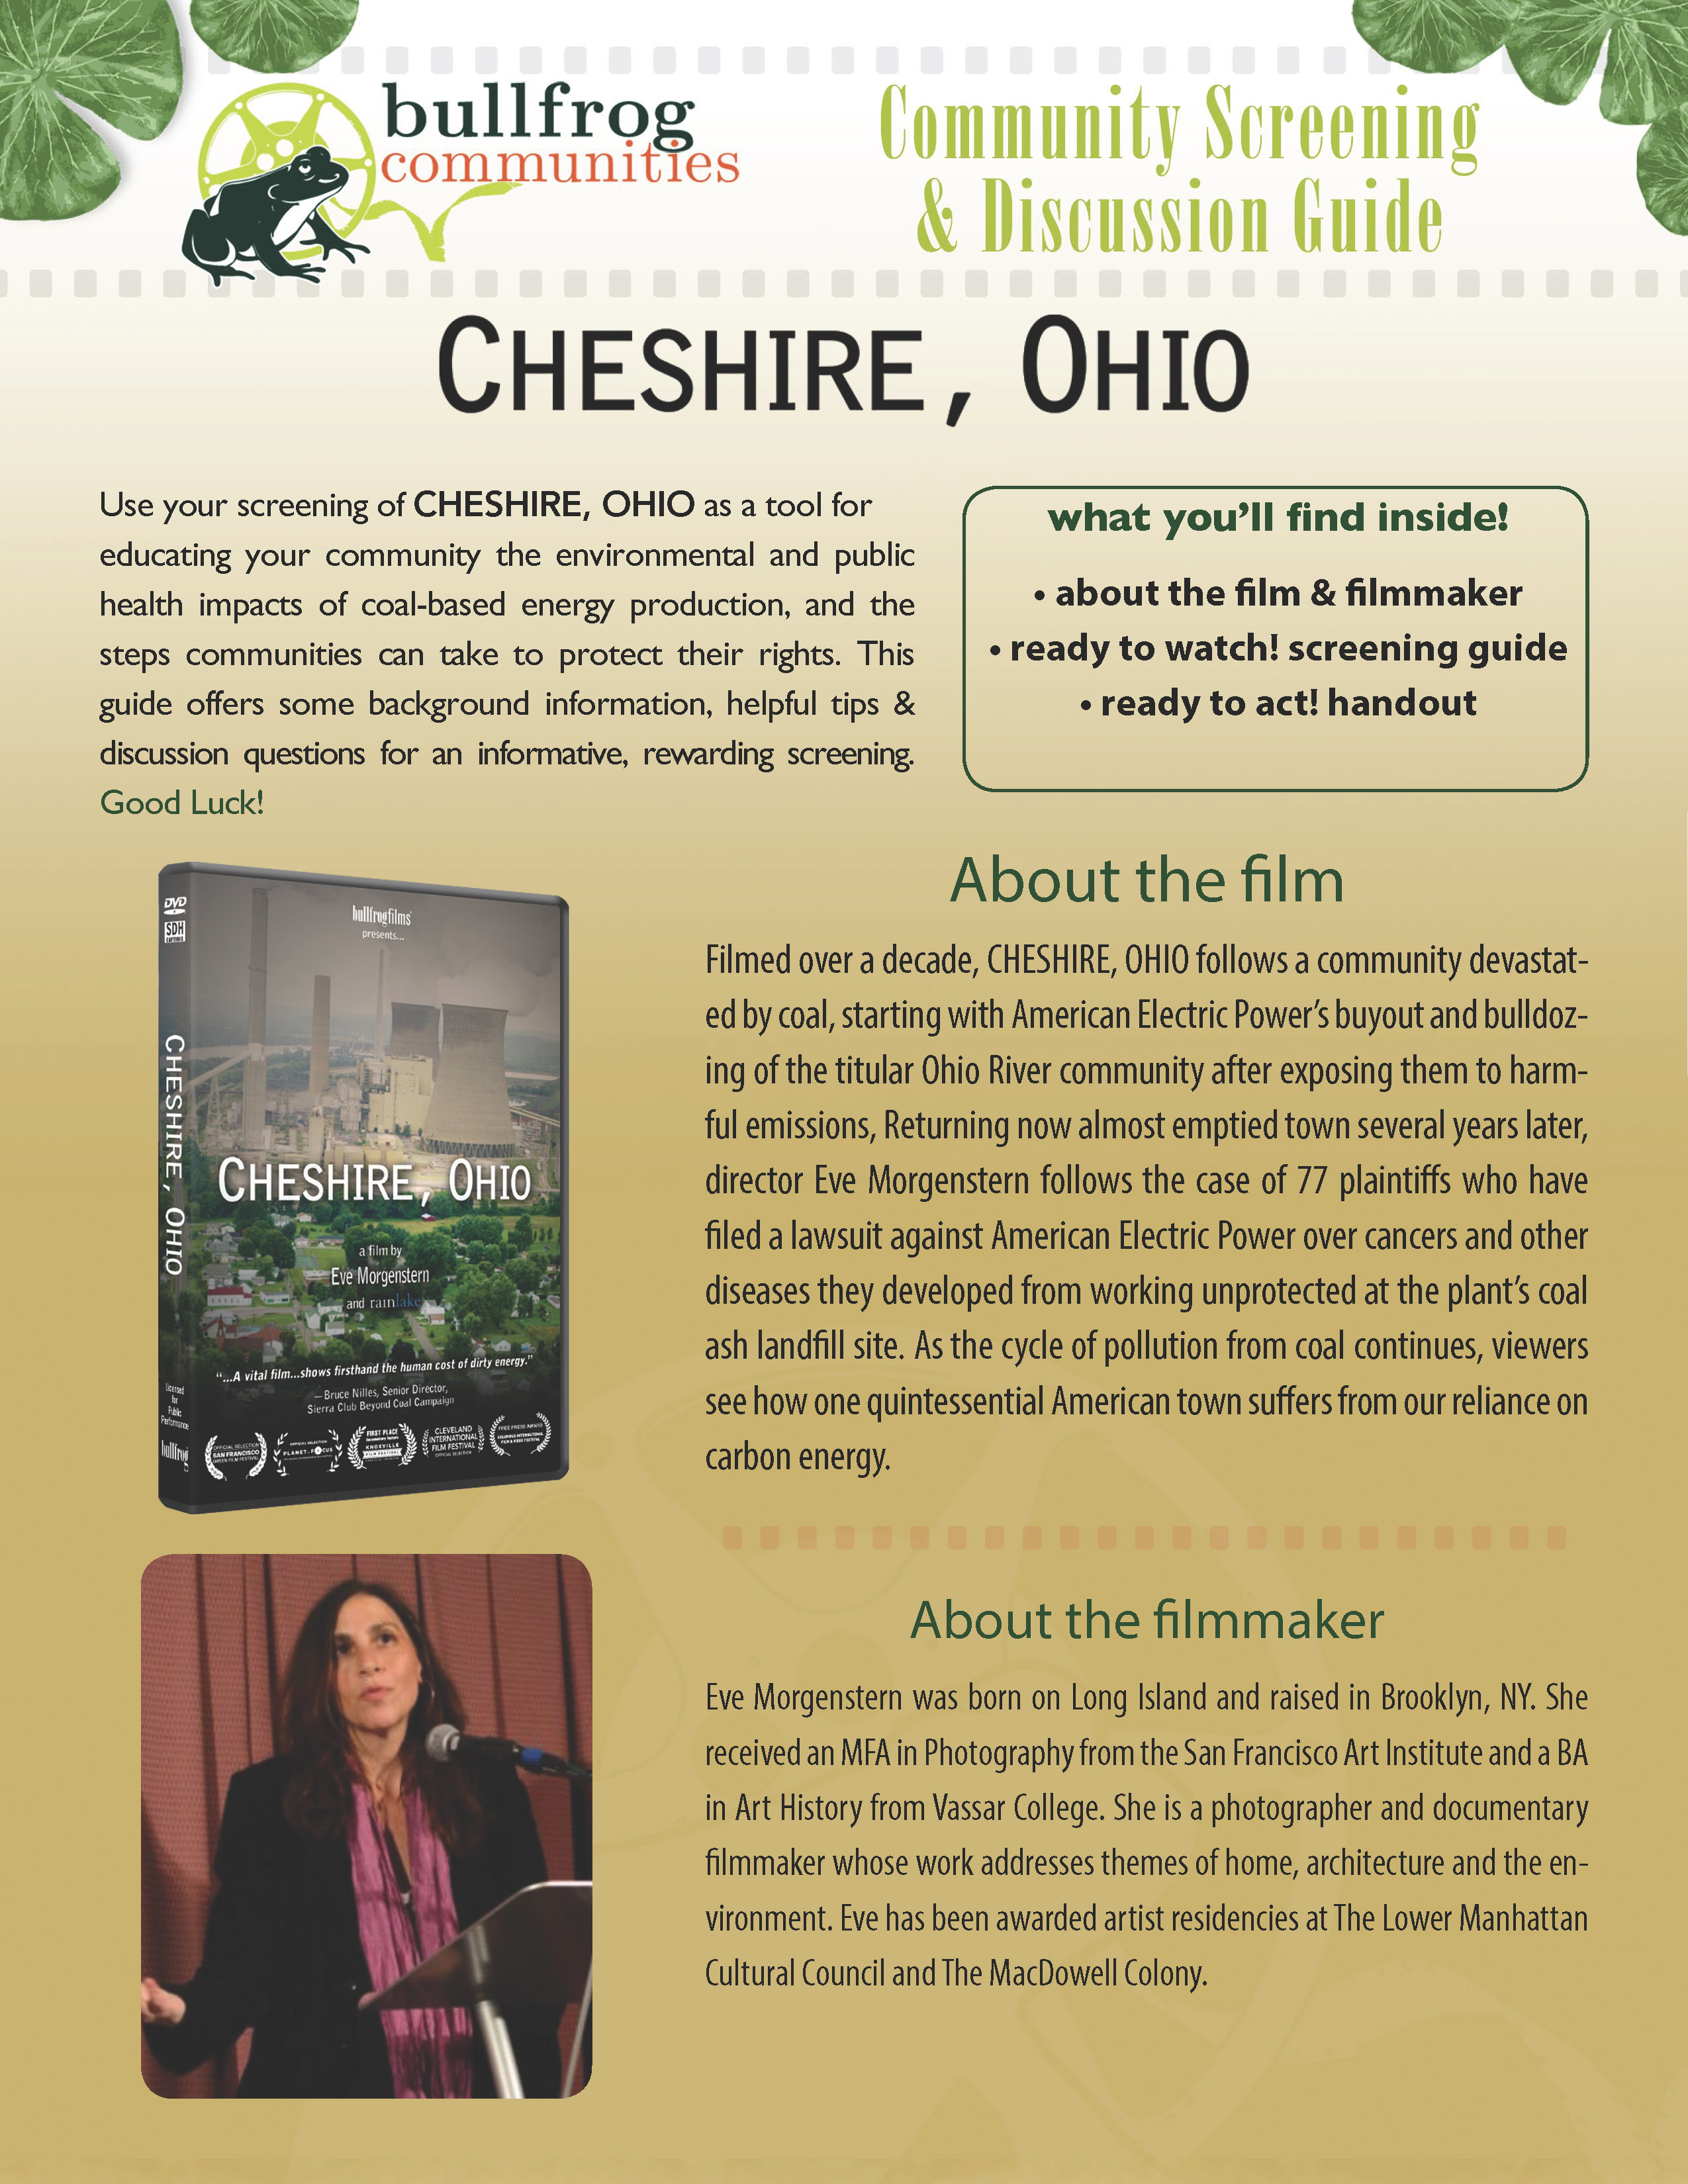 CHESHIRE, OHIO Screening Guide